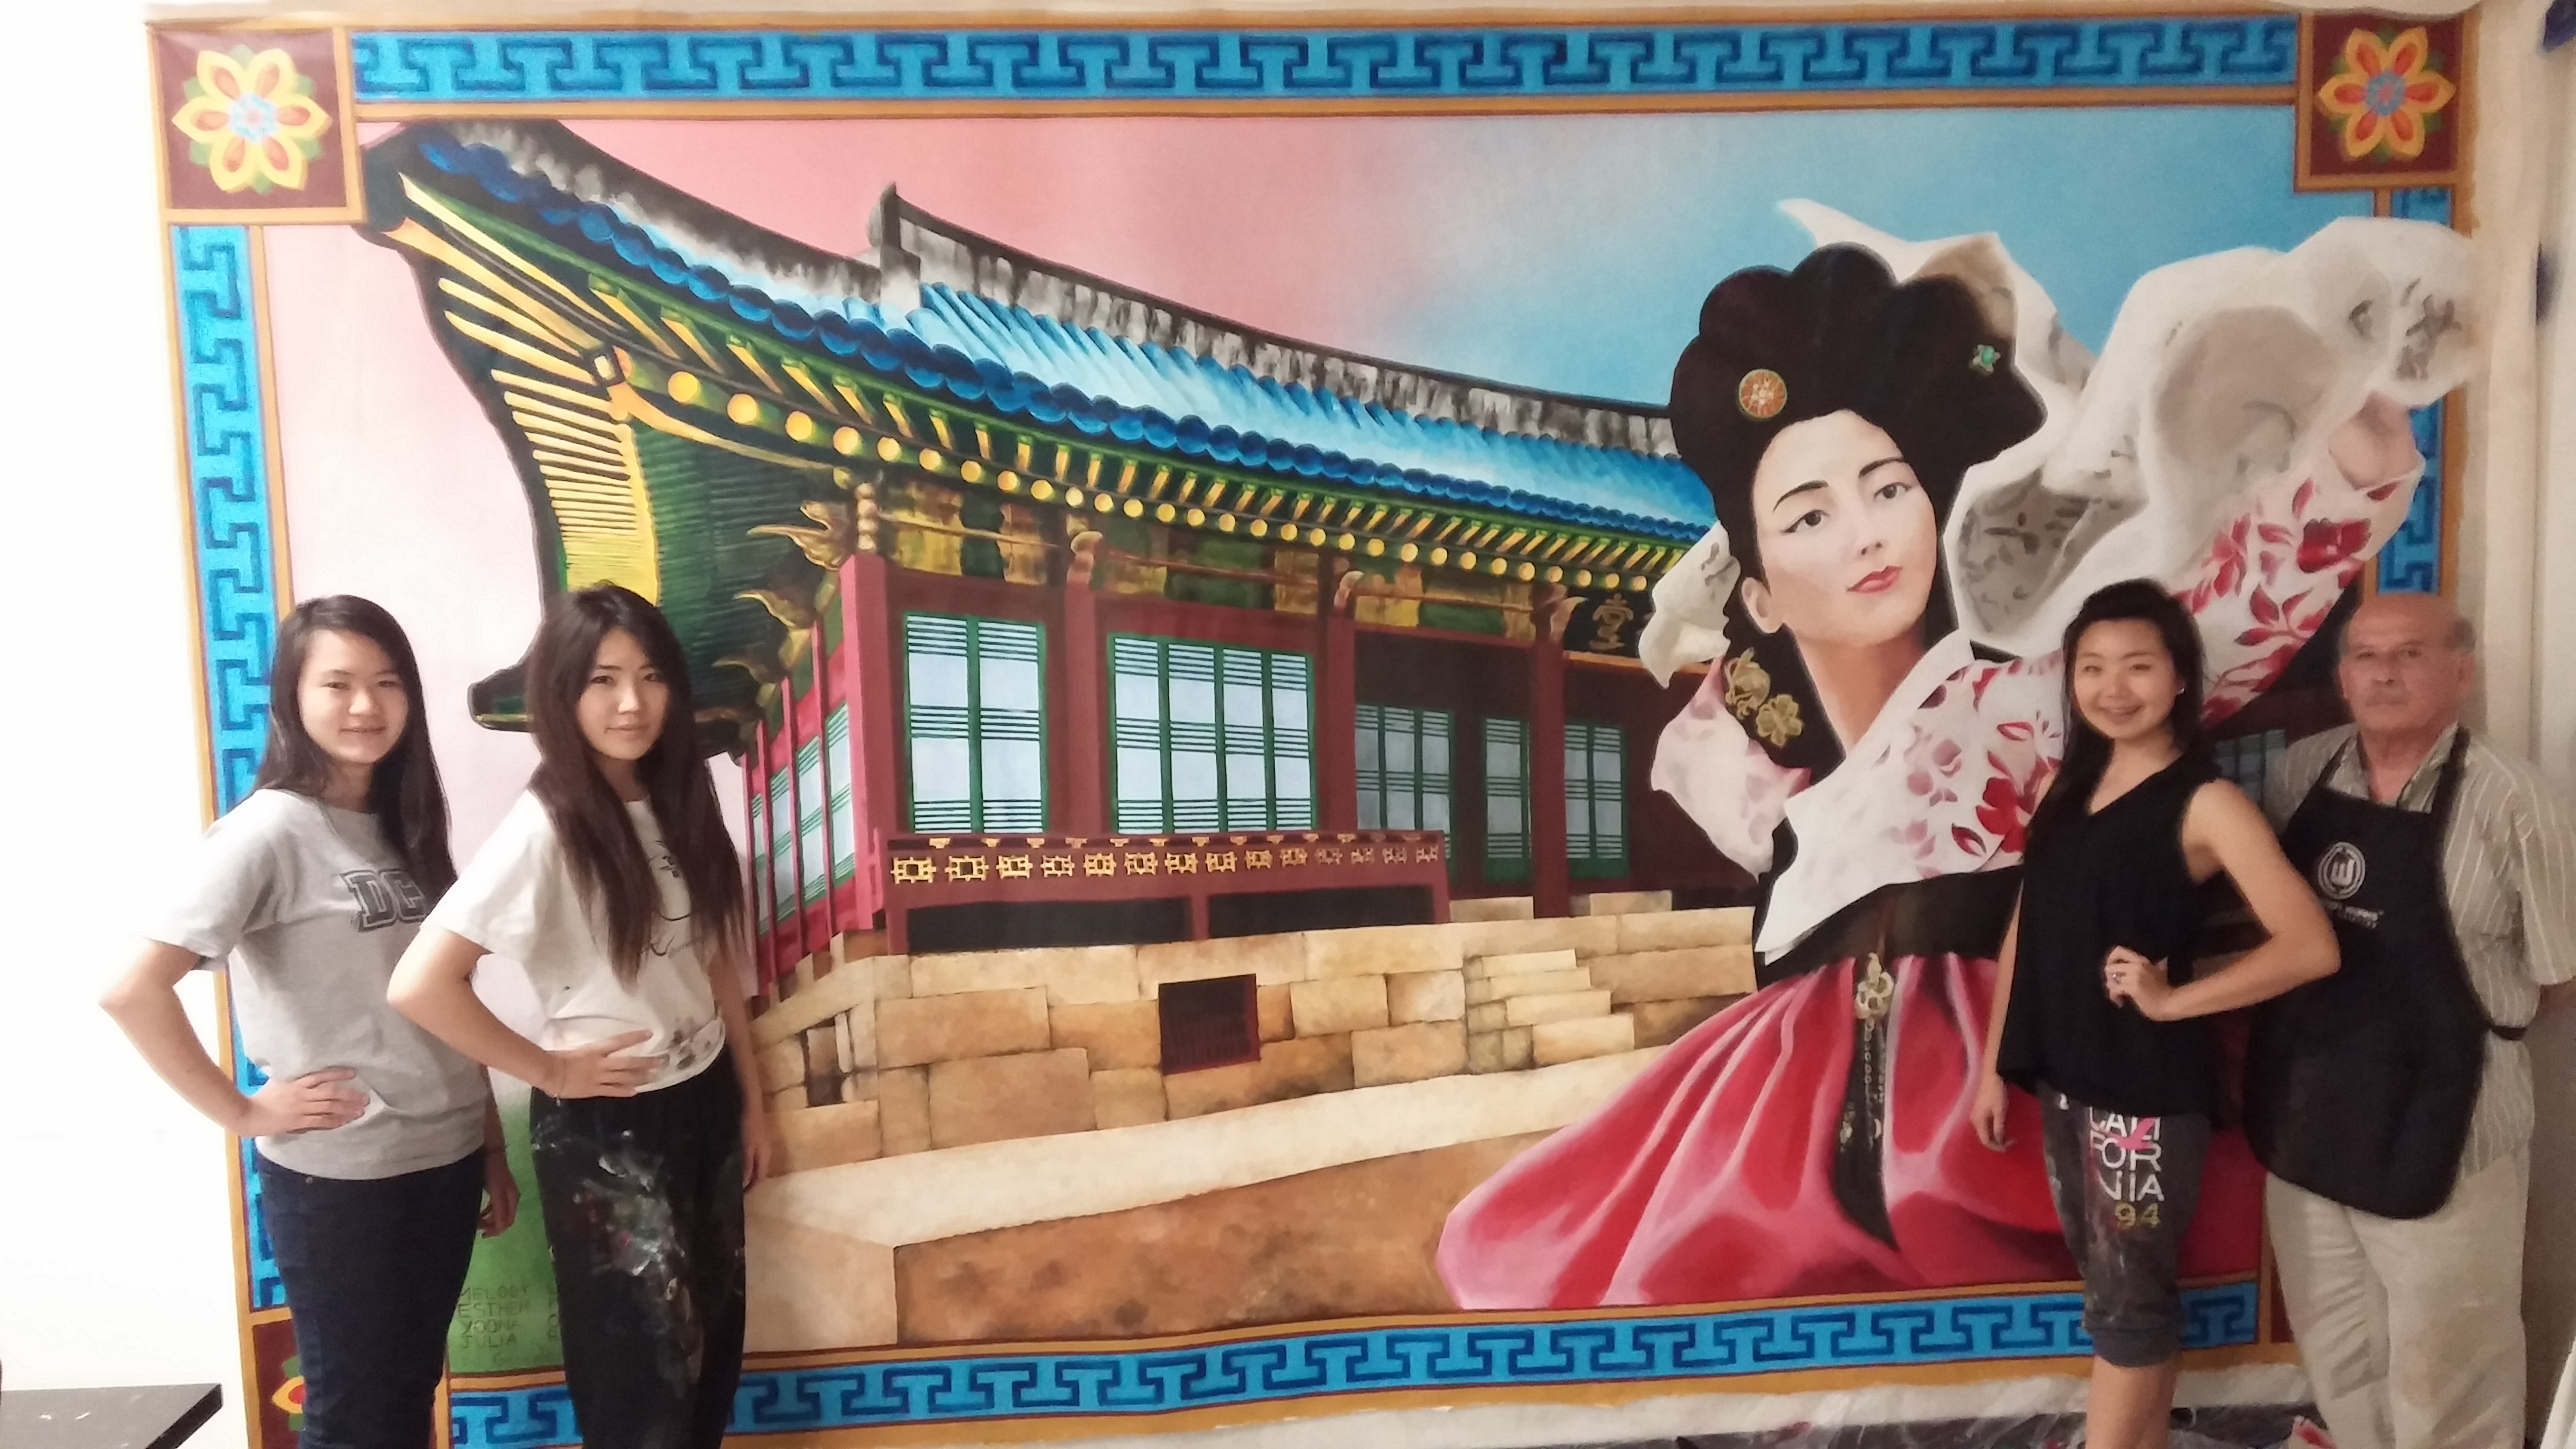 Mural created by Korean students draws attention at OCSA – The Korea